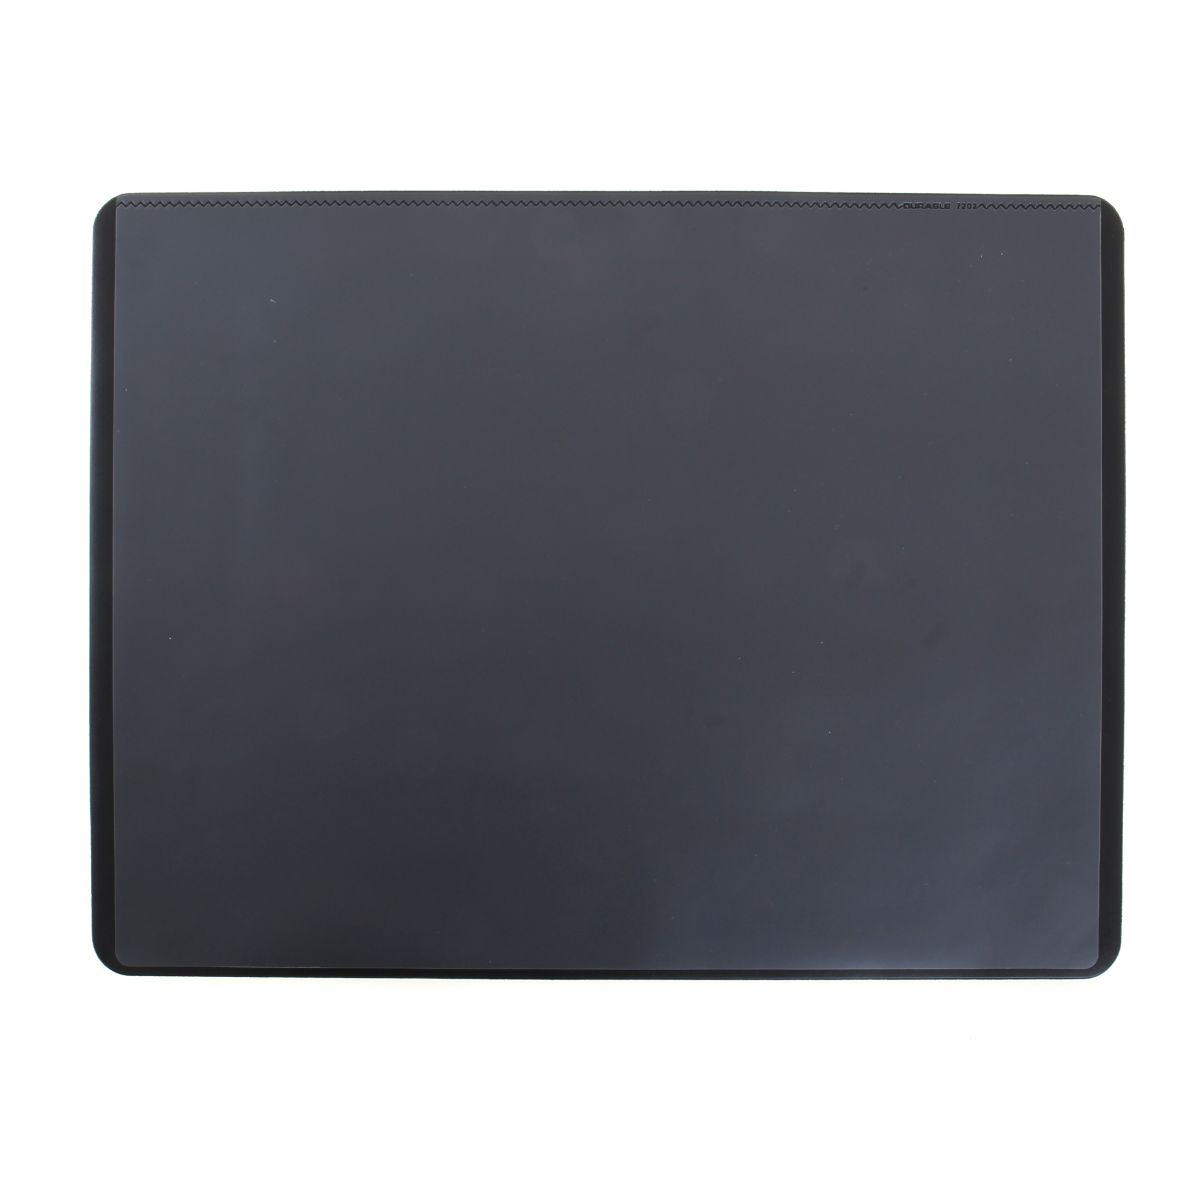 Durable Desk Mat With Overlay Small Black Octer 163 15 99